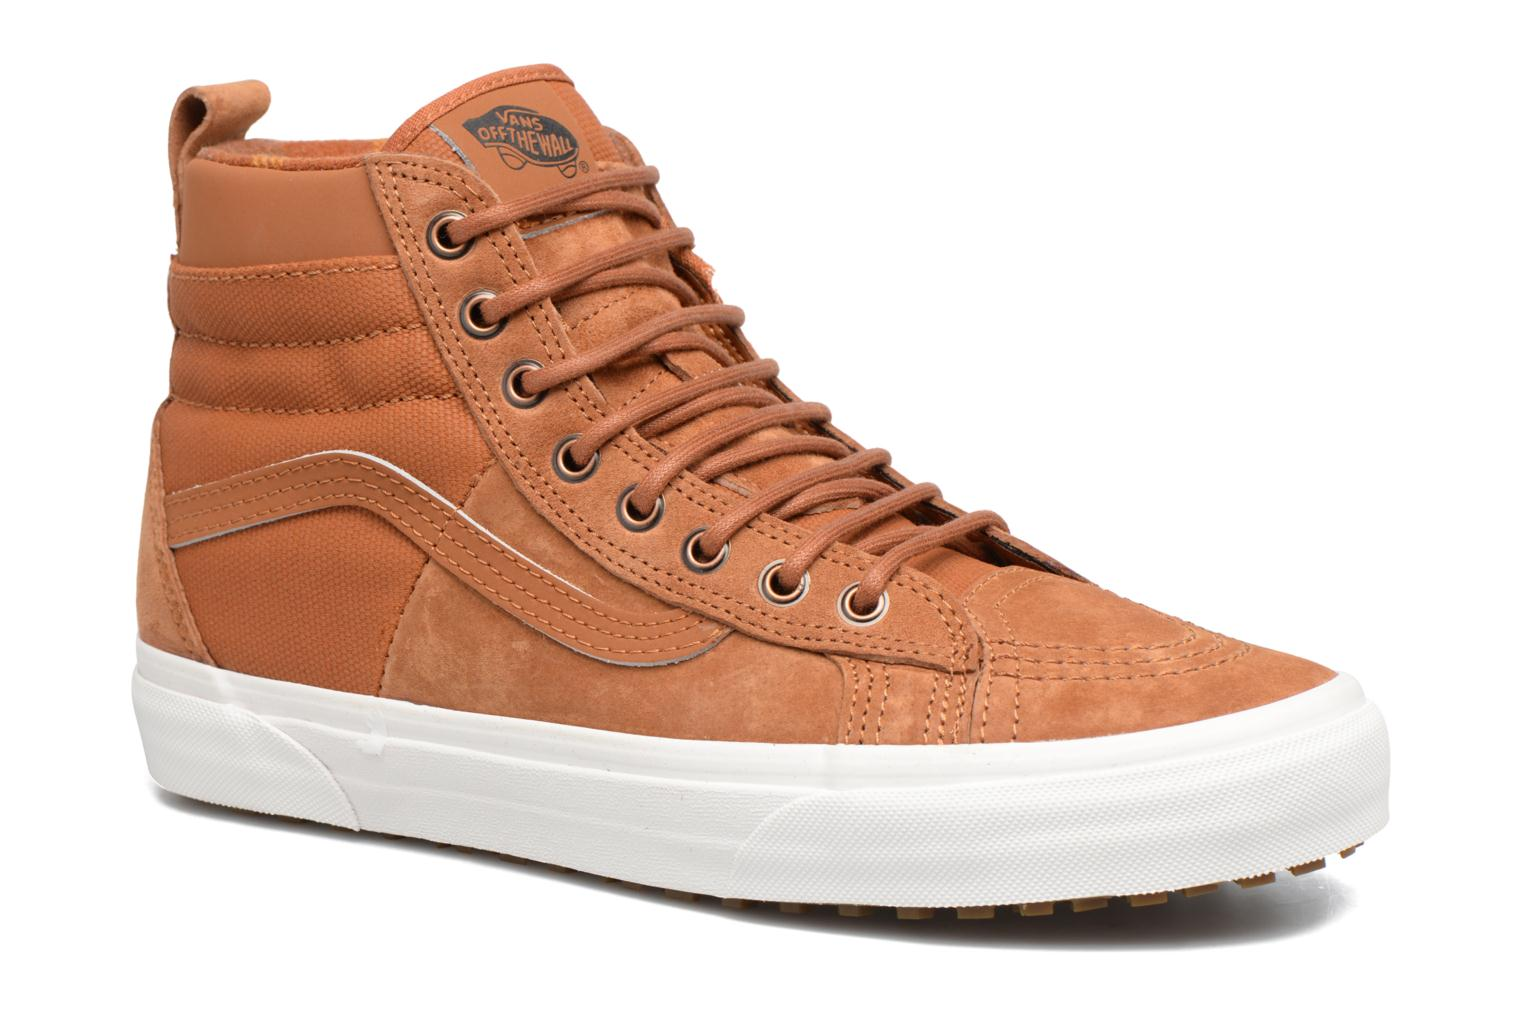 Baskets Vans SK8-Hi MTE DX Marron vue détail/paire